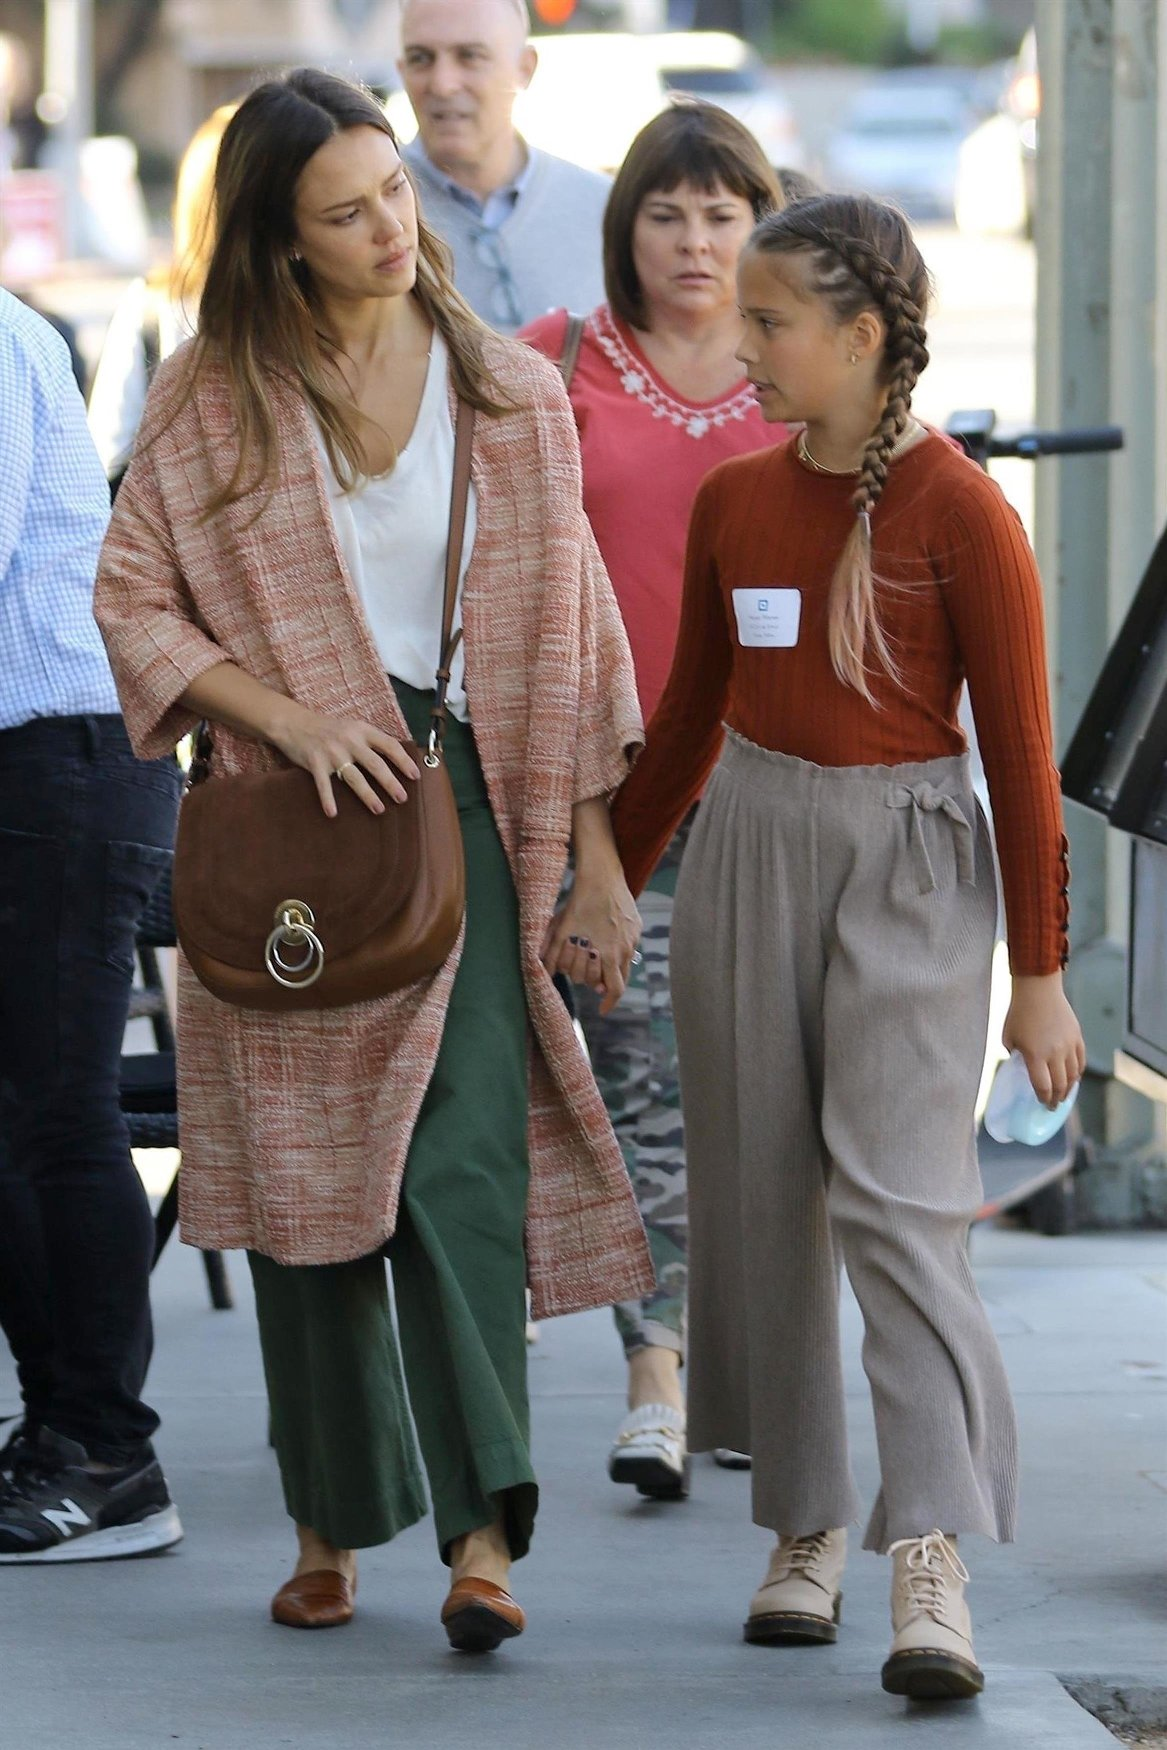 Brentwood, CA  - *EXCLUSIVE*  - Actress Jessica Alba and her daughter Honor Warren were seen enjoying a stroll and a cool drink from Starbucks while out in Brentwood.  Pictured: Jessica Alba, Honor Warren  BACKGRID USA 15 OCTOBER 2018, Image: 391152183, License: Rights-managed, Restrictions: , Model Release: no, Credit line: Profimedia, AKM-GSI